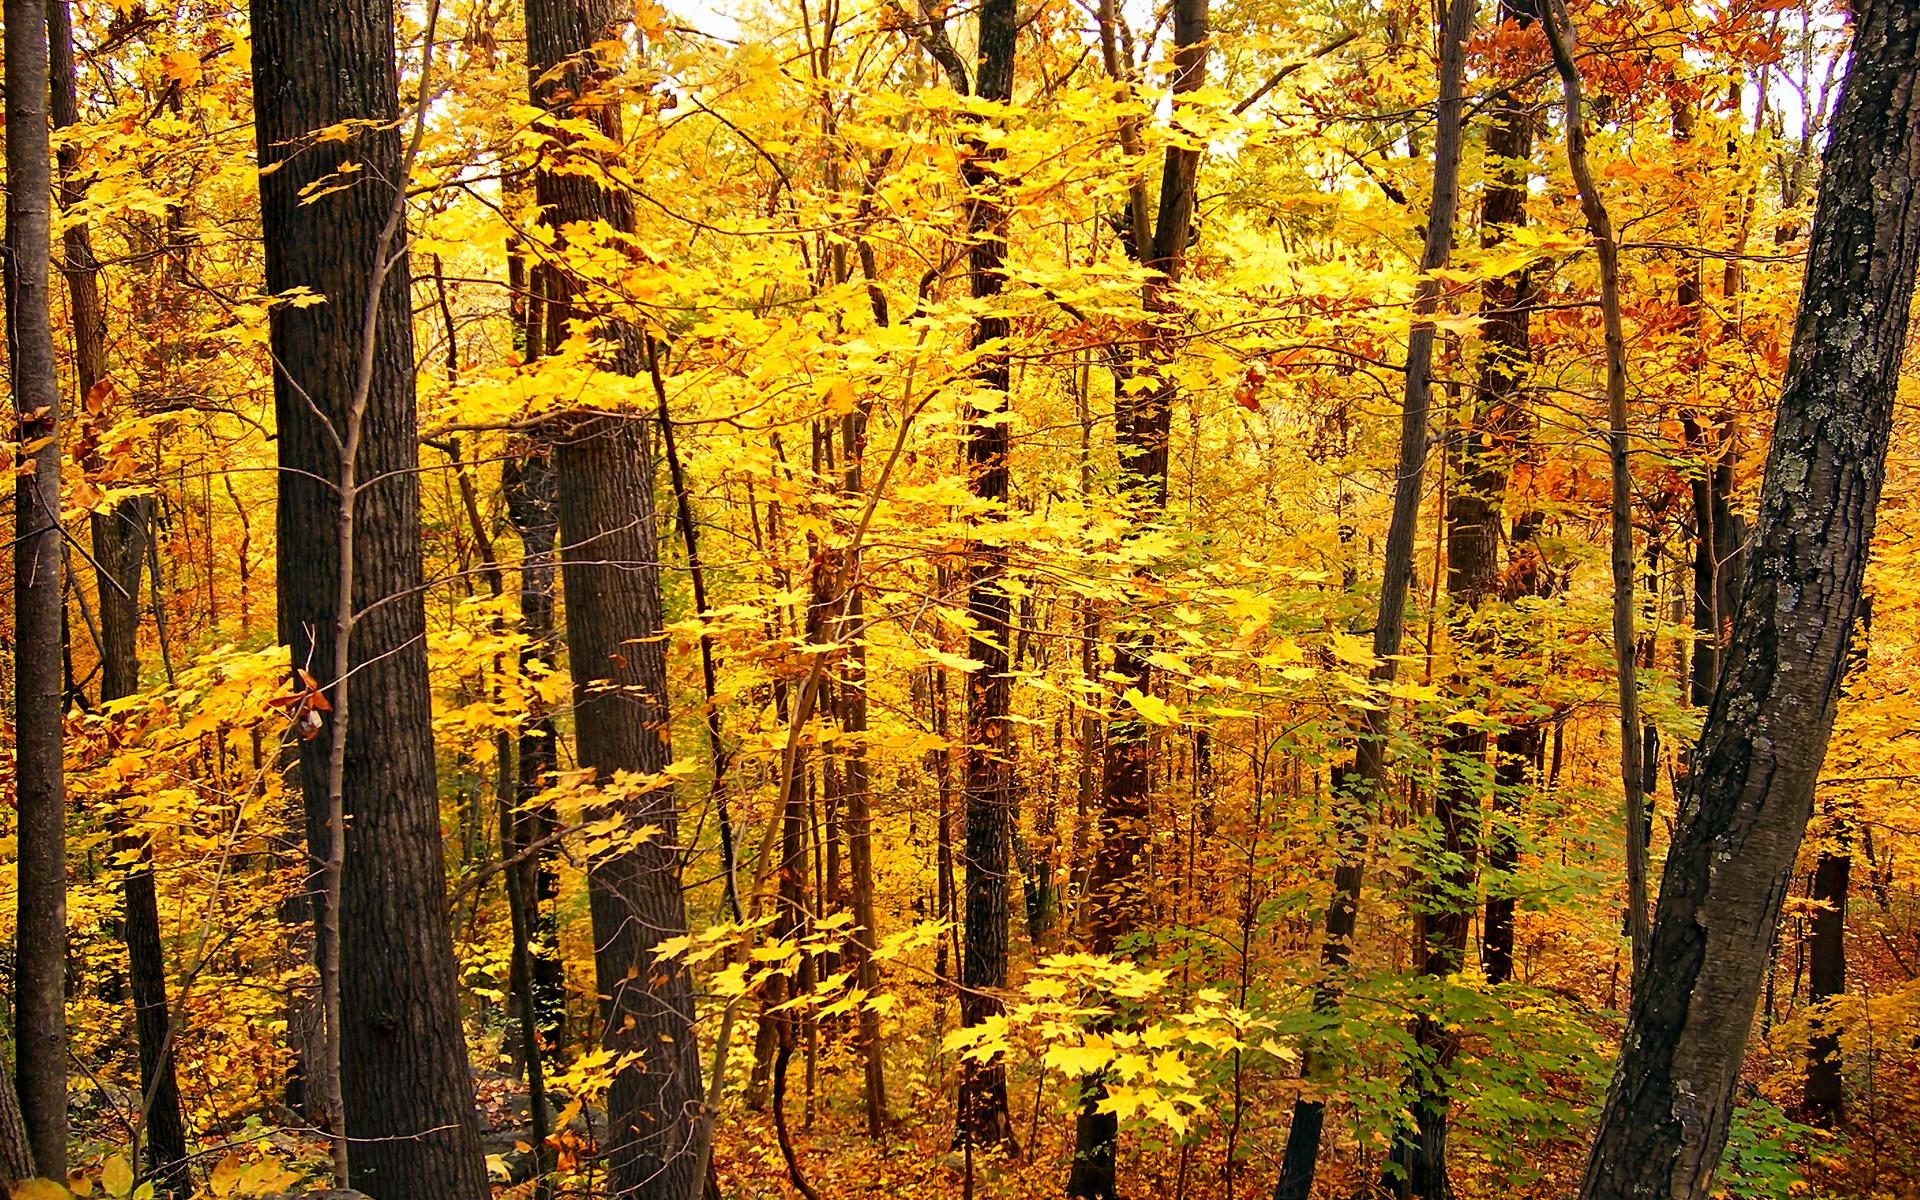 Temperate Deciduous Forest Biome By: Matthew MacKinnon - ThingLink